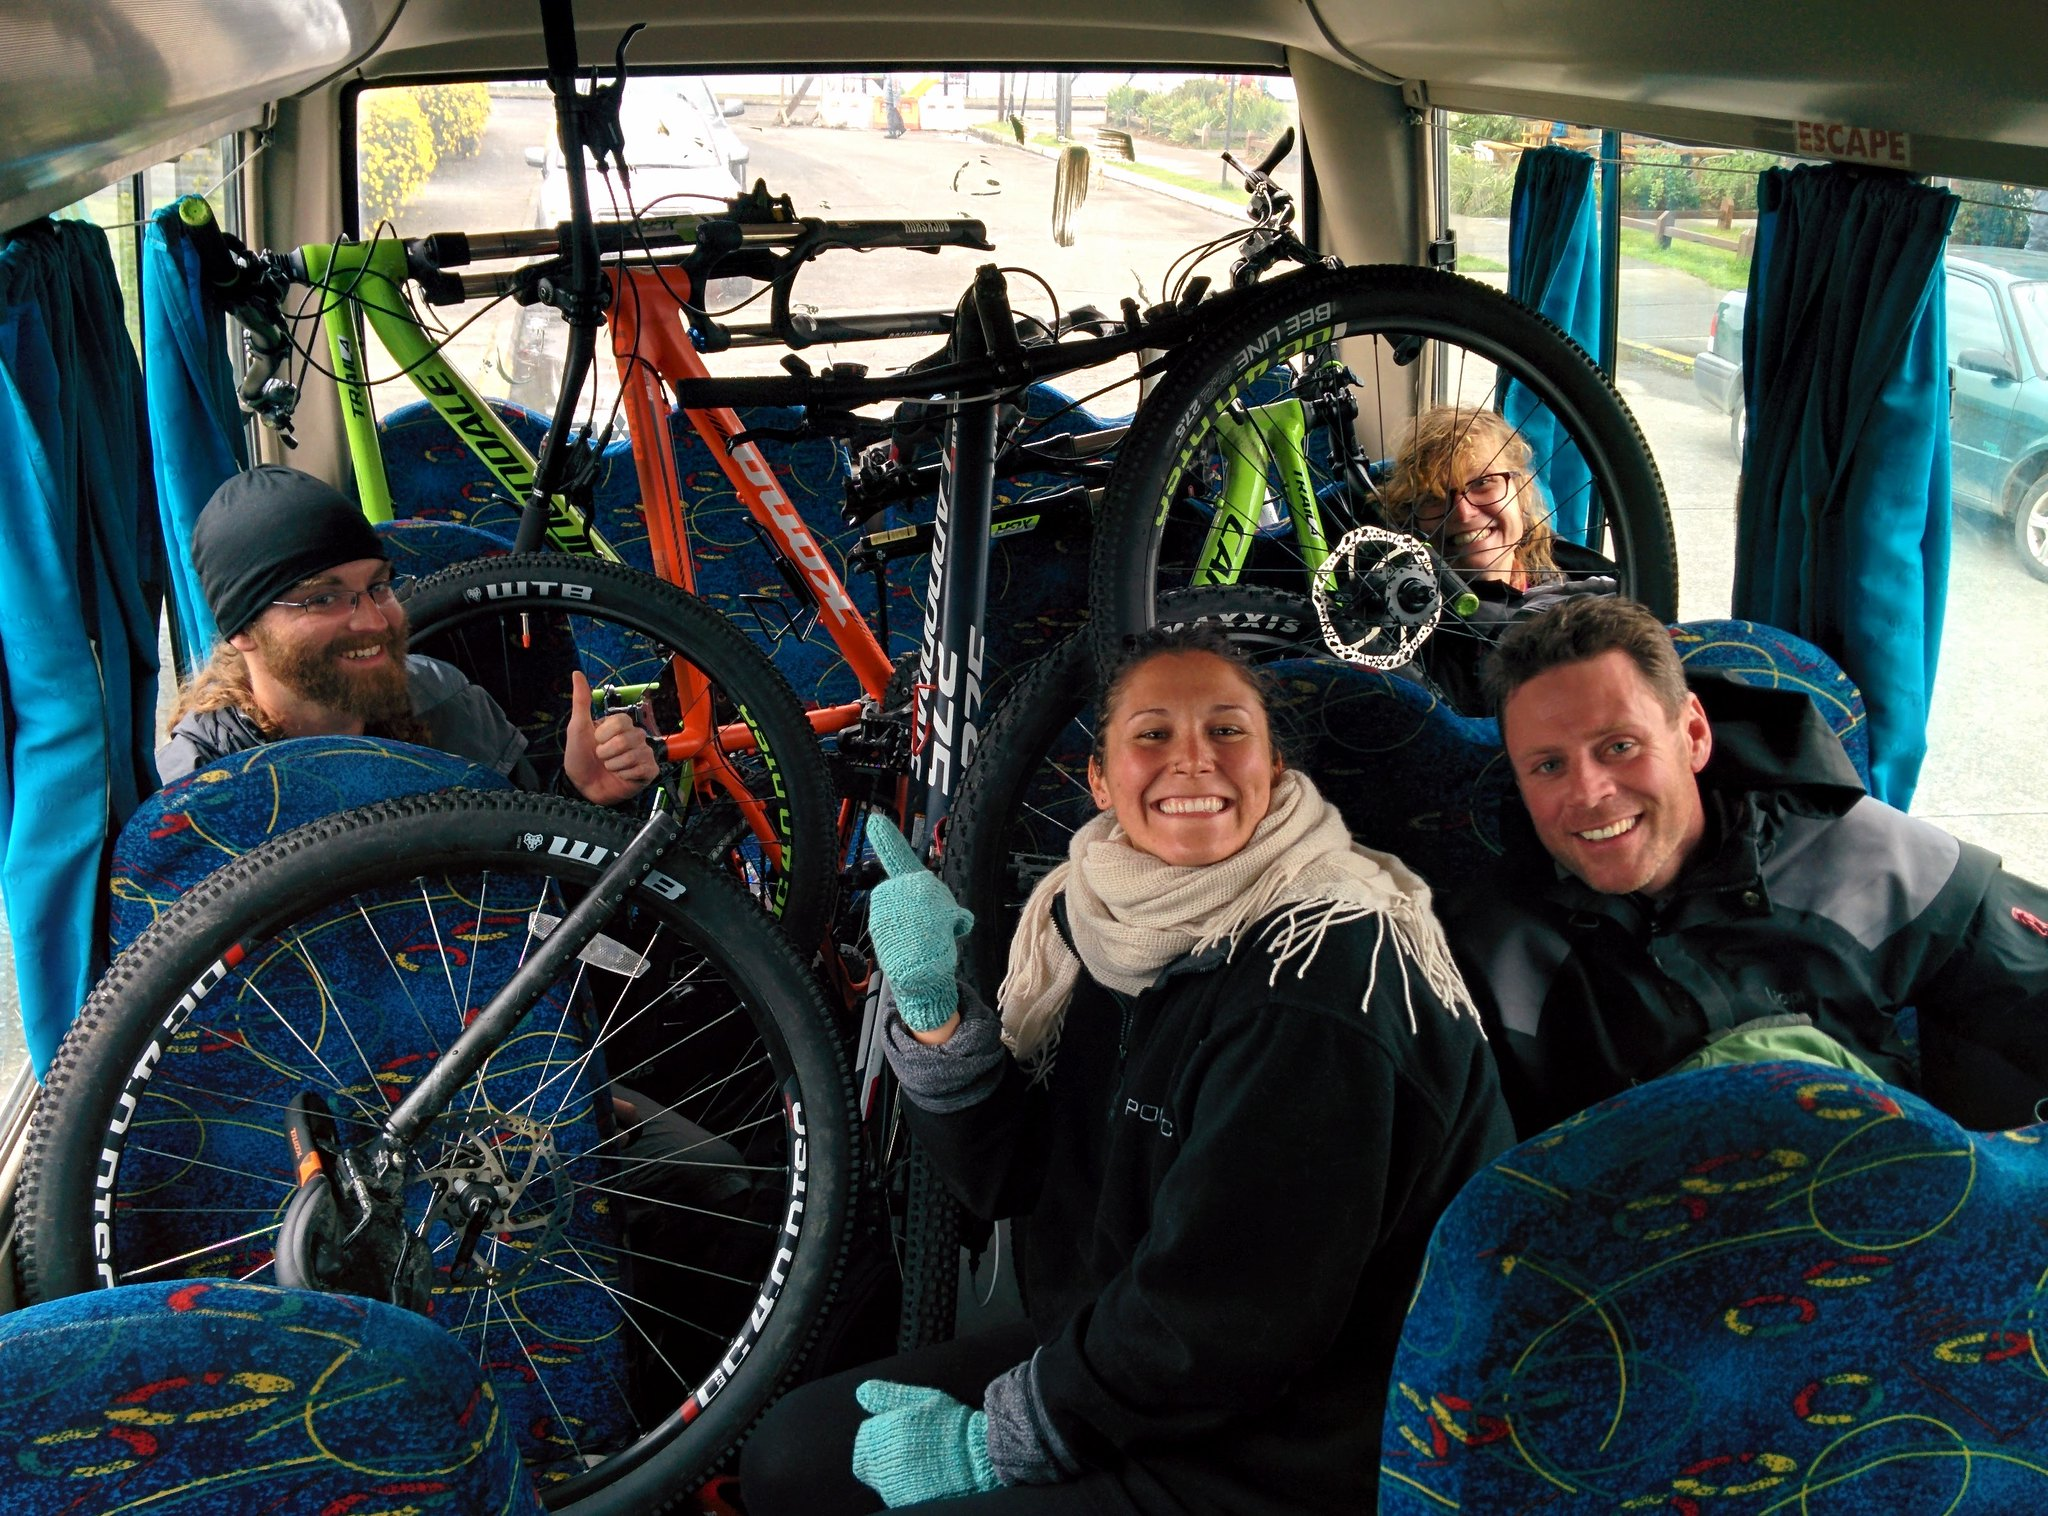 Us crammed in the back of a minibus with all our bikes